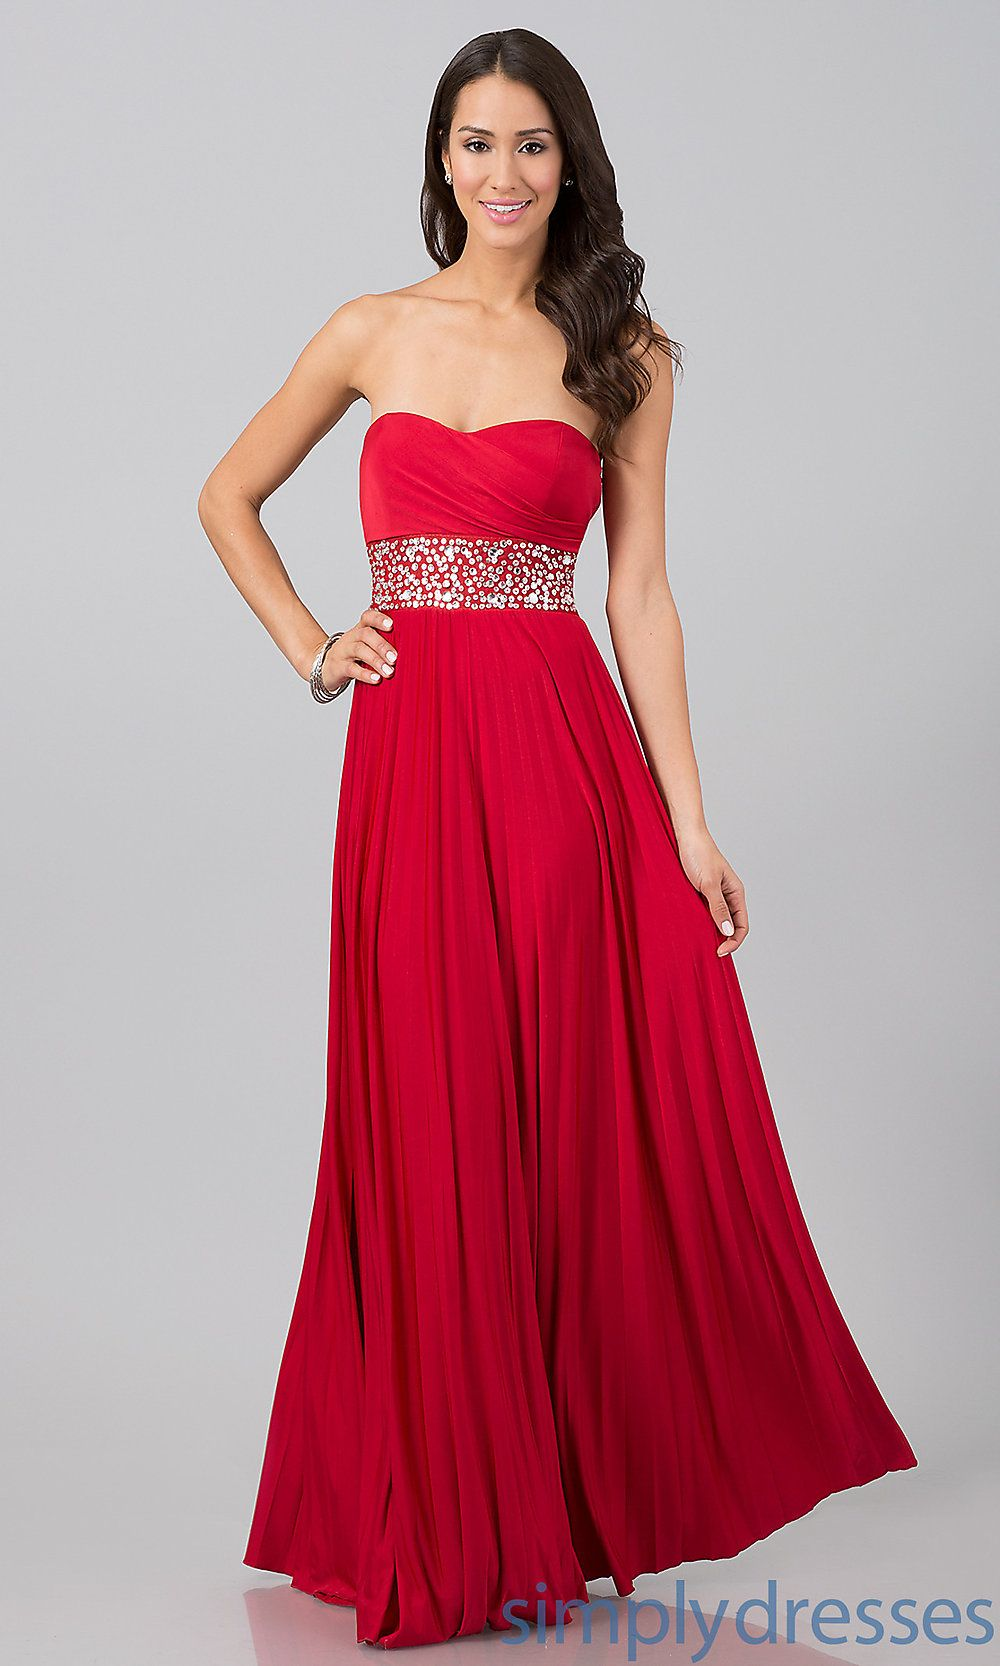 Dress floor length strapless dress simply dresses red red red